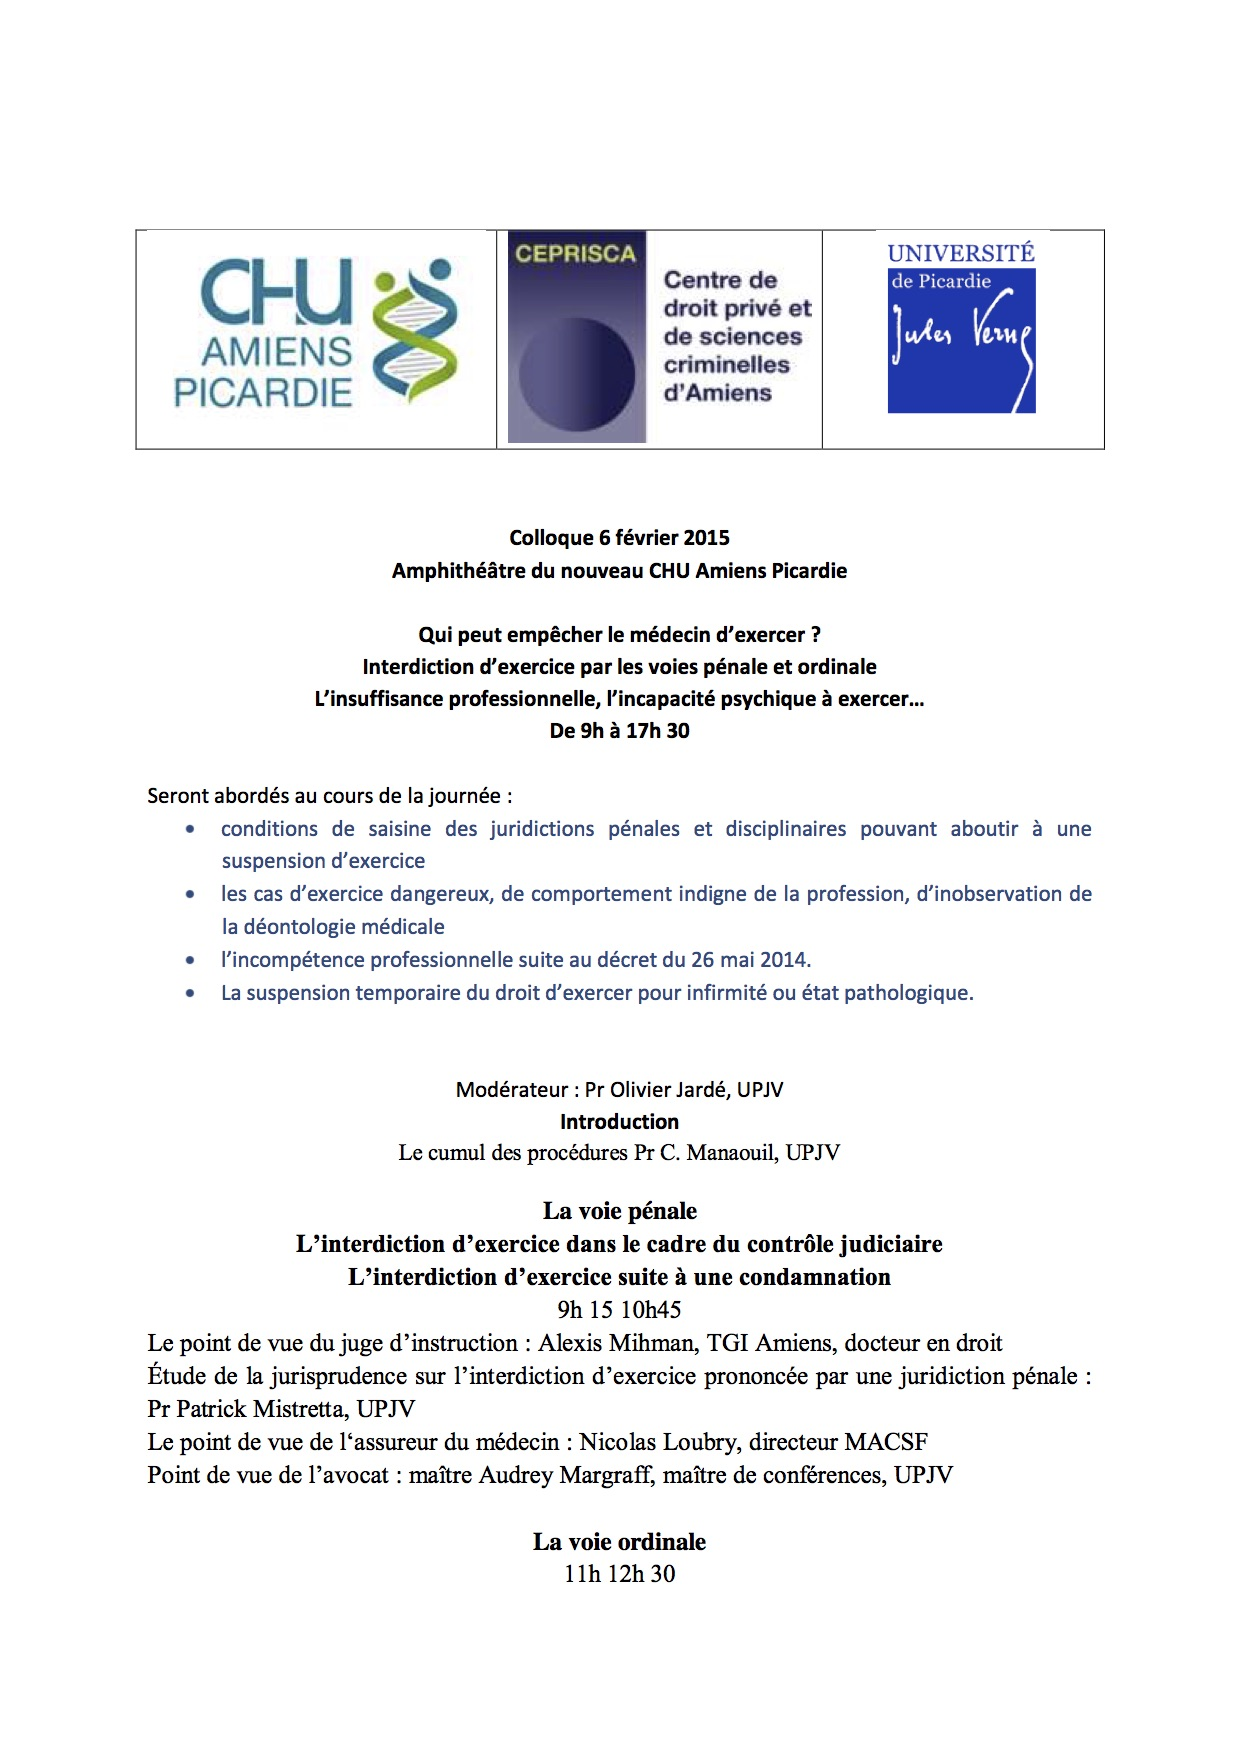 6 fev 2015 colloque prog-1